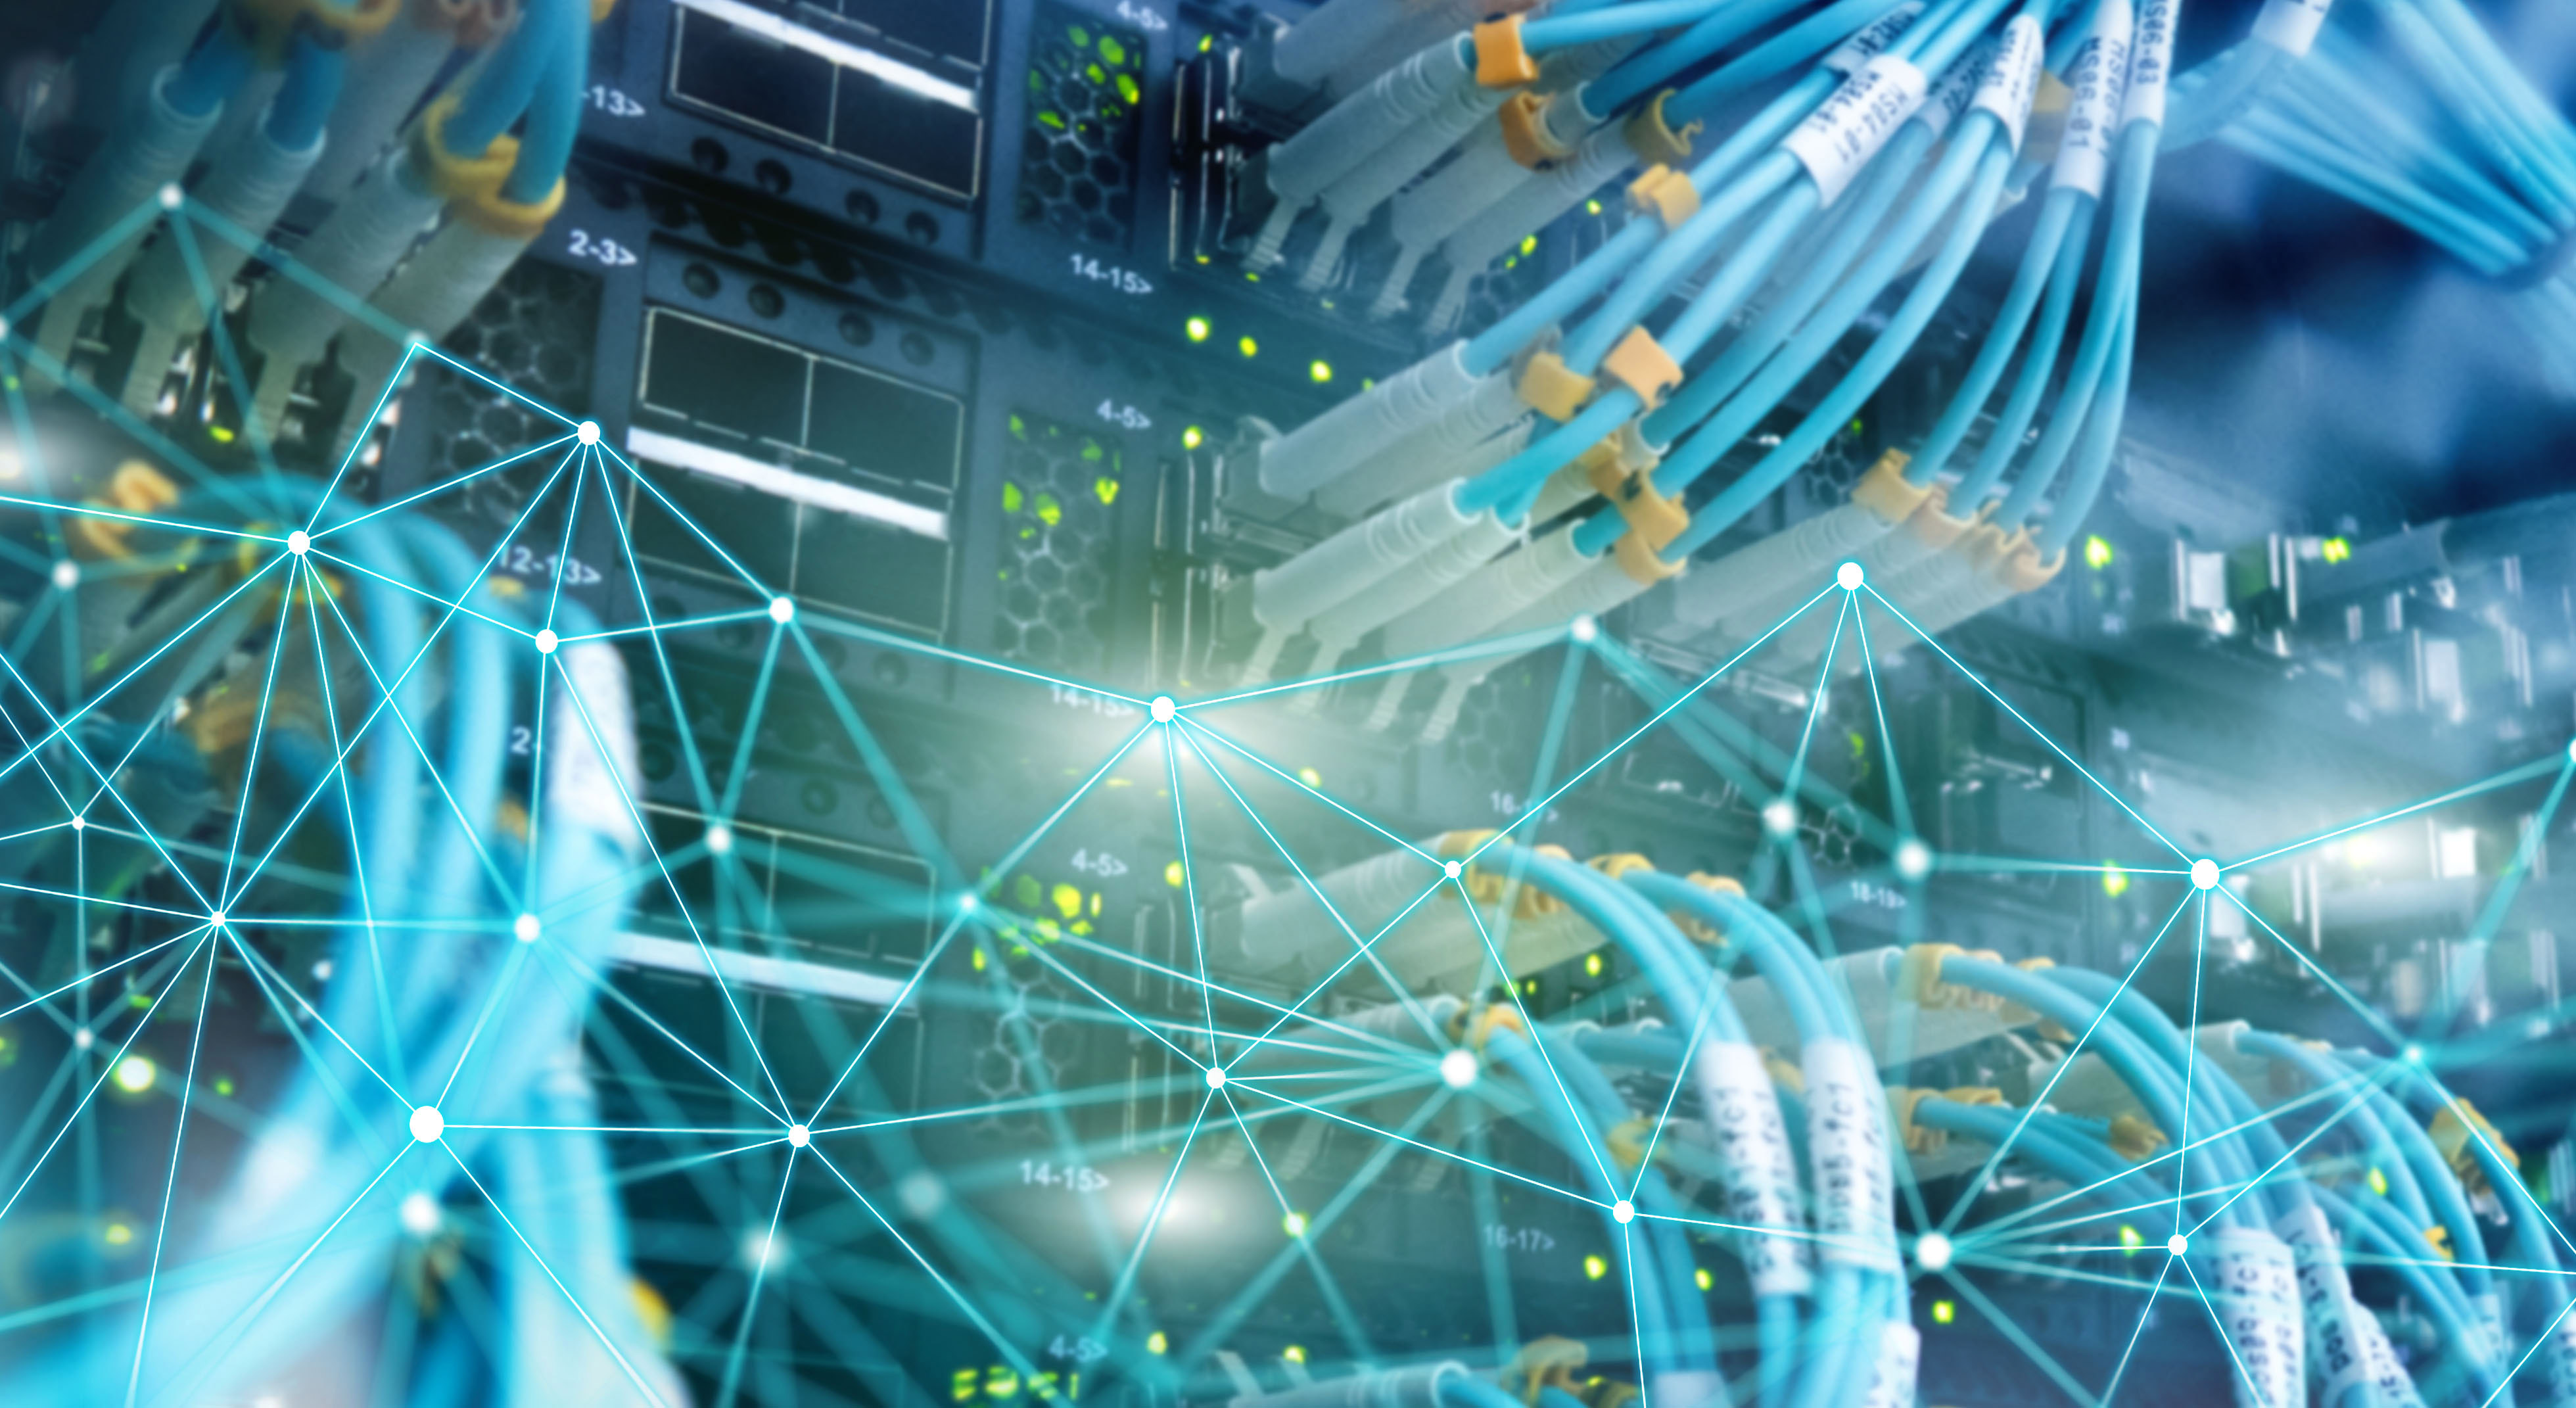 Telecommunication global network structure and networking concept on panoramic server background